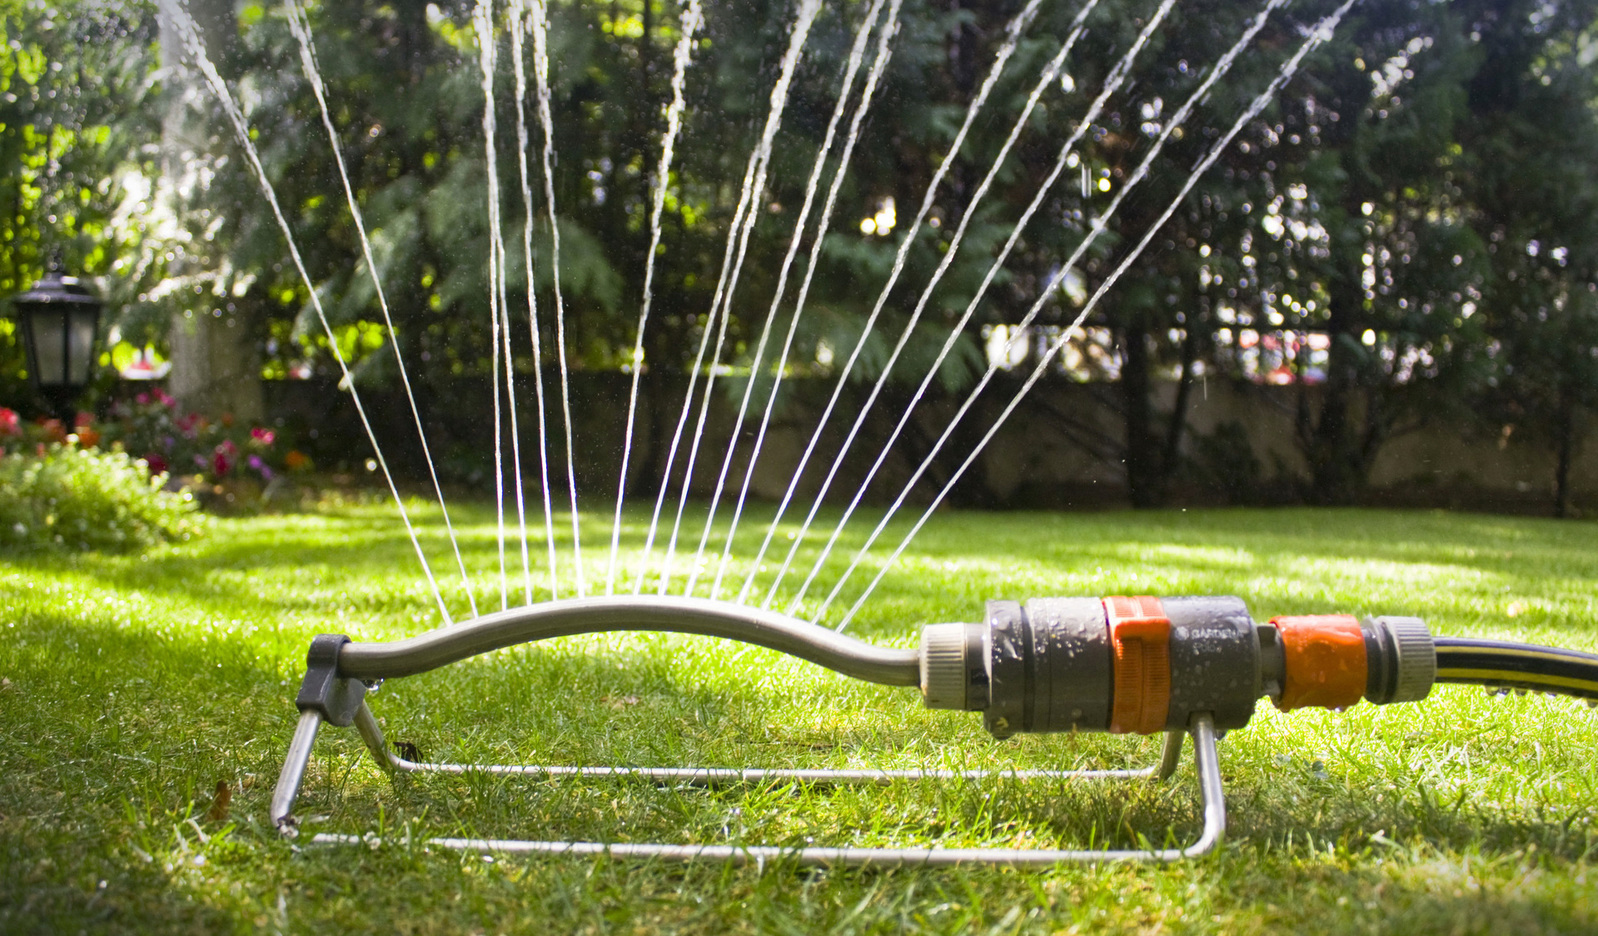 Summer Lawn Care: Grass needs water in the hot summer